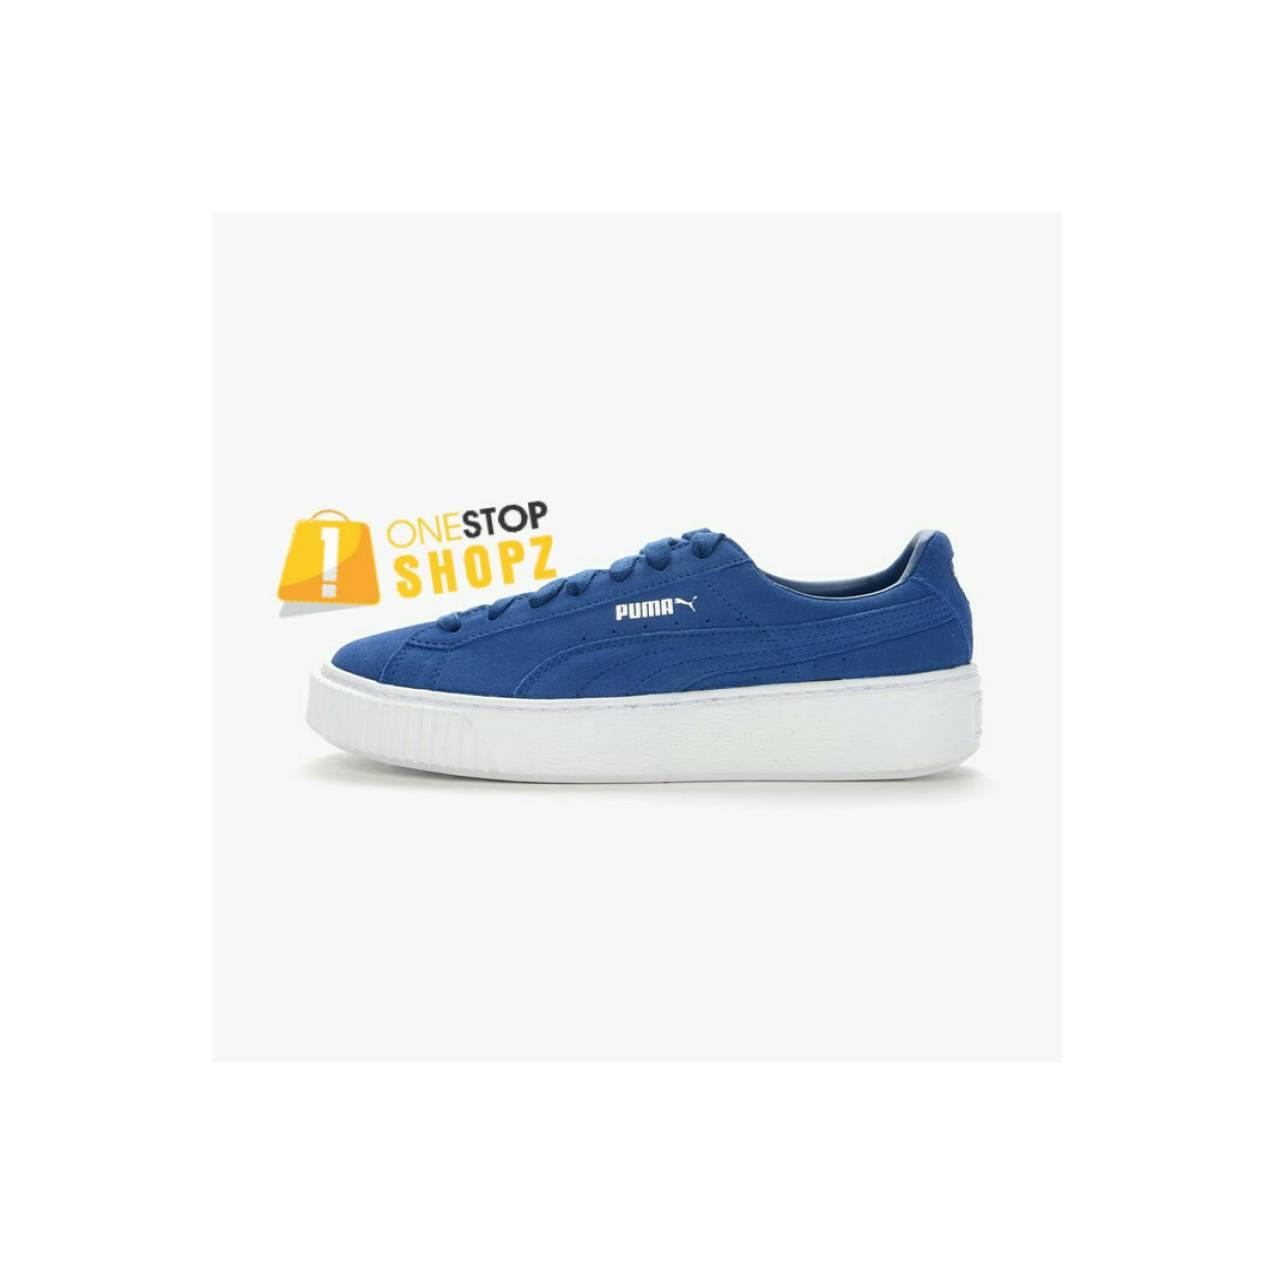 PUMA SUEDE PLATFORM 362223-02 MEN RUNNING SHOES ONESTOPSHOPZ OSS